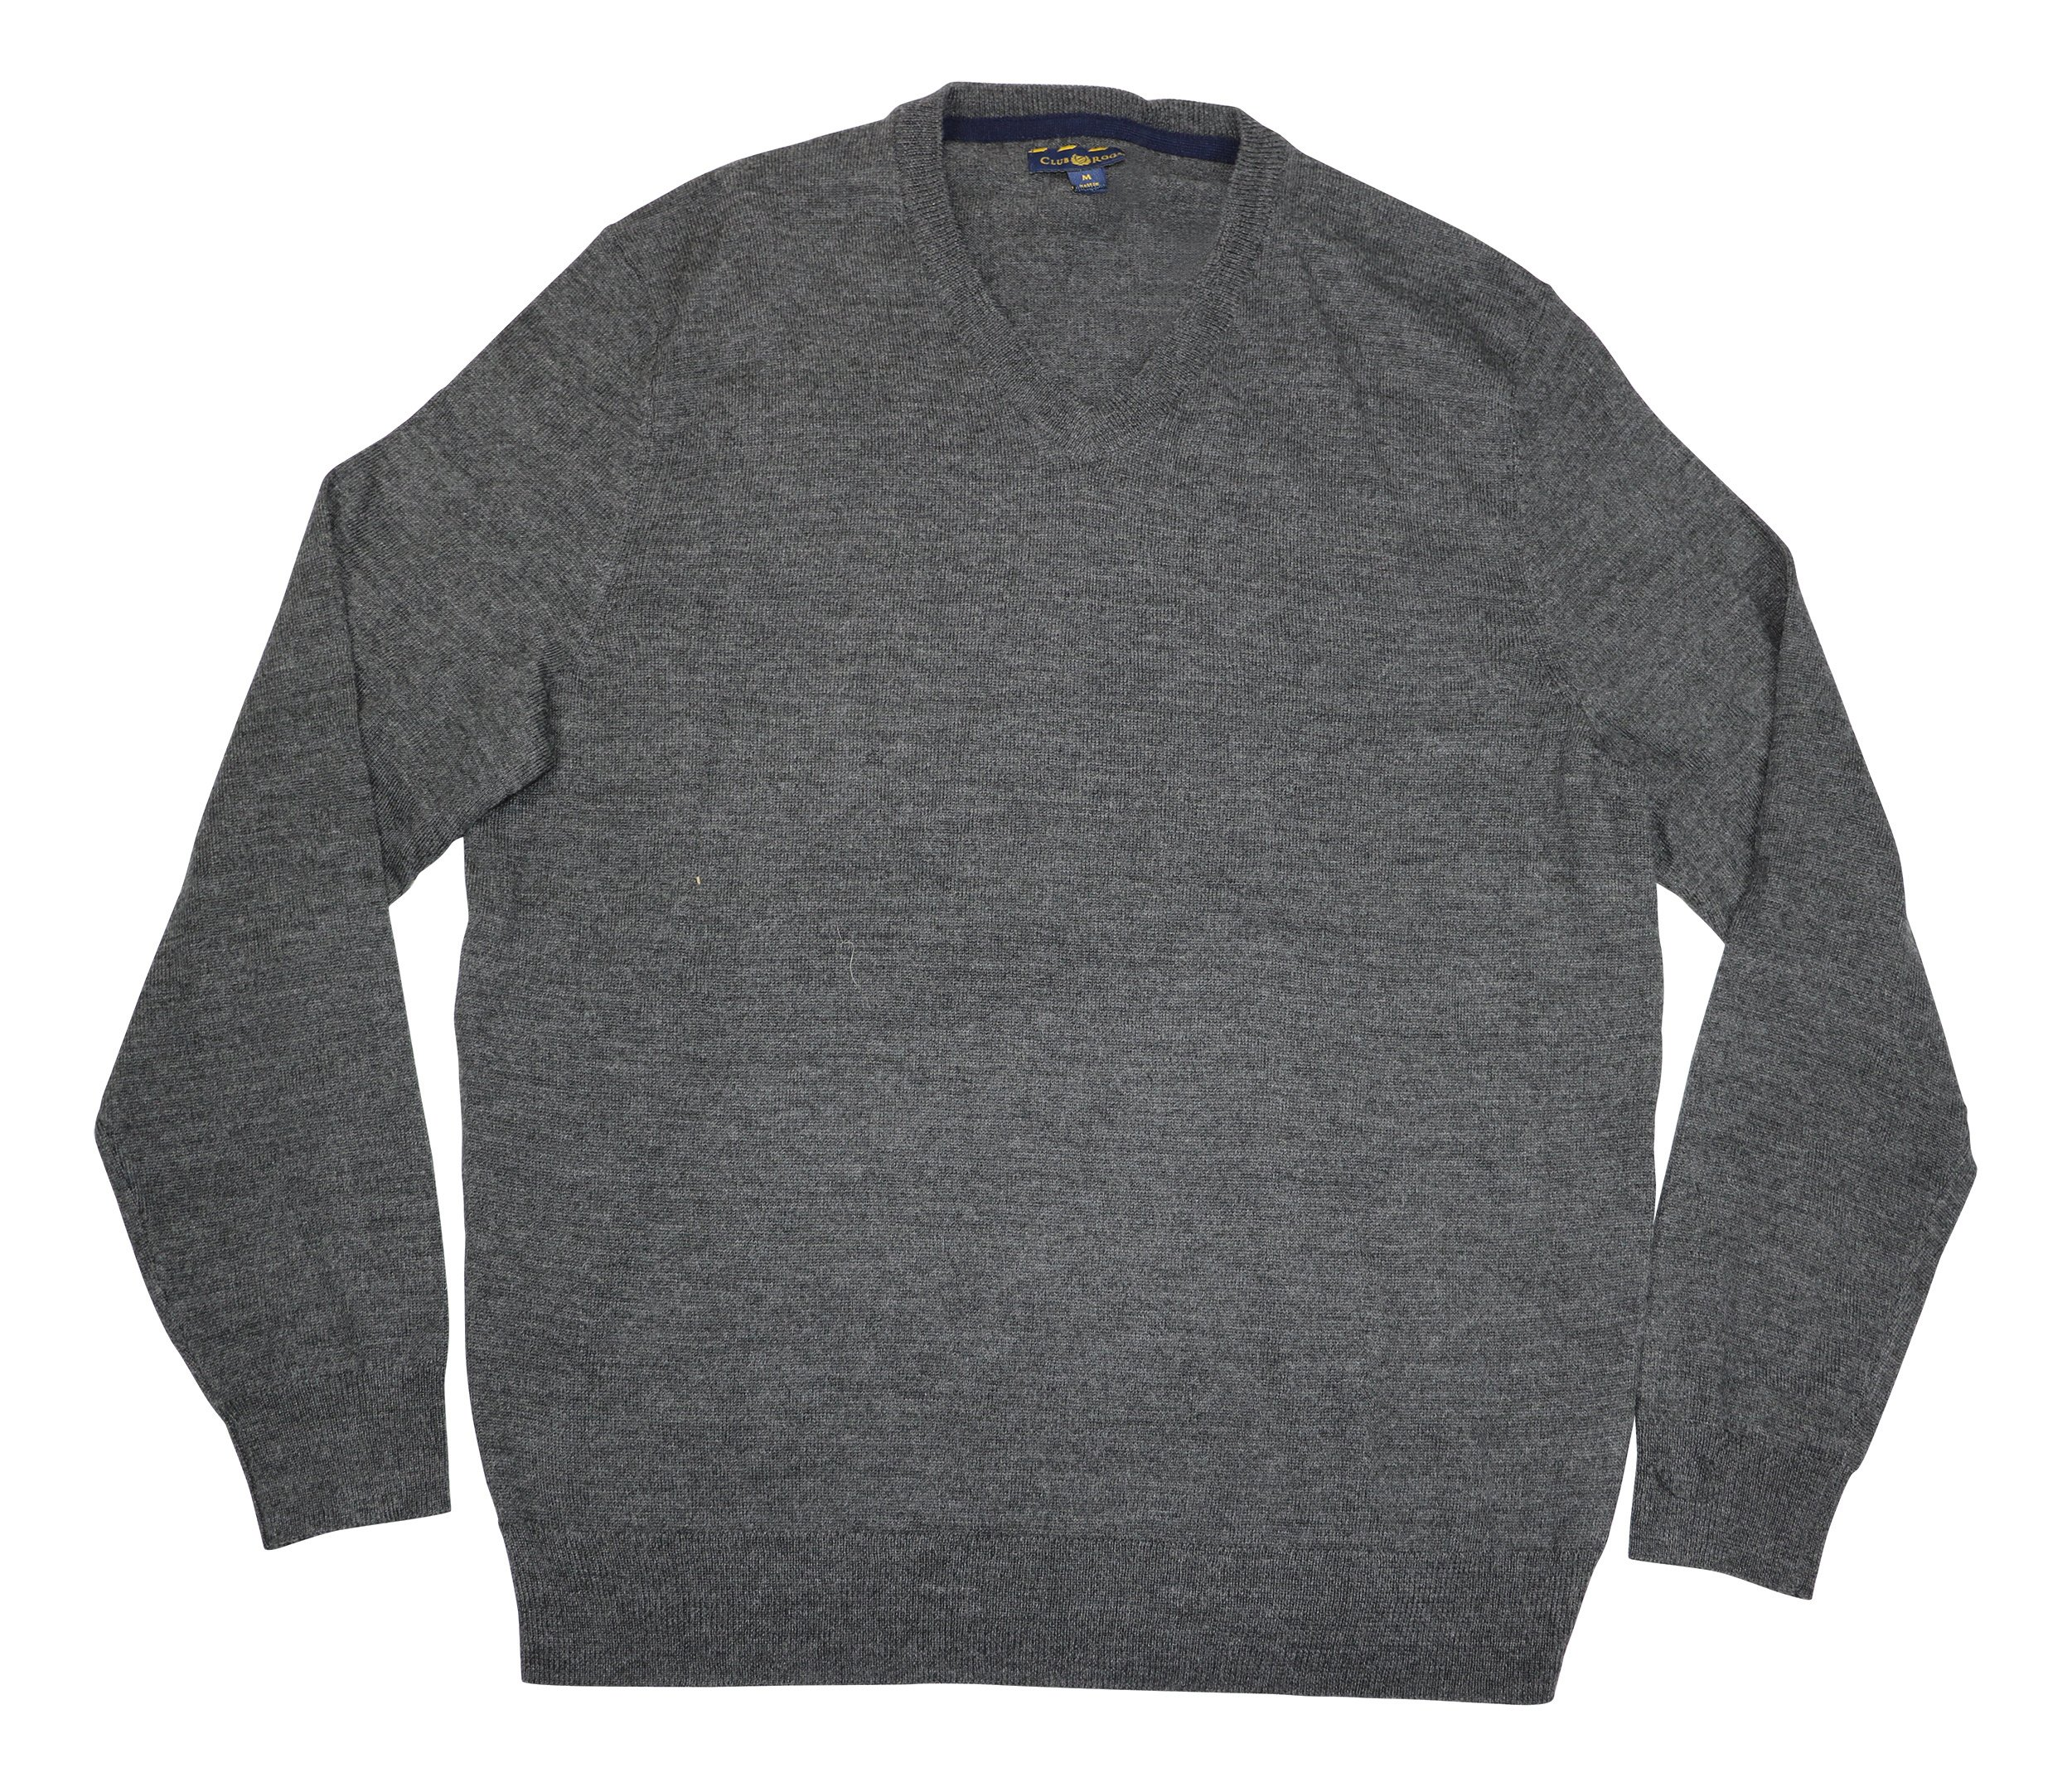 Club Room Mens Wool Blend V-Neck Pullover Sweater Gray M